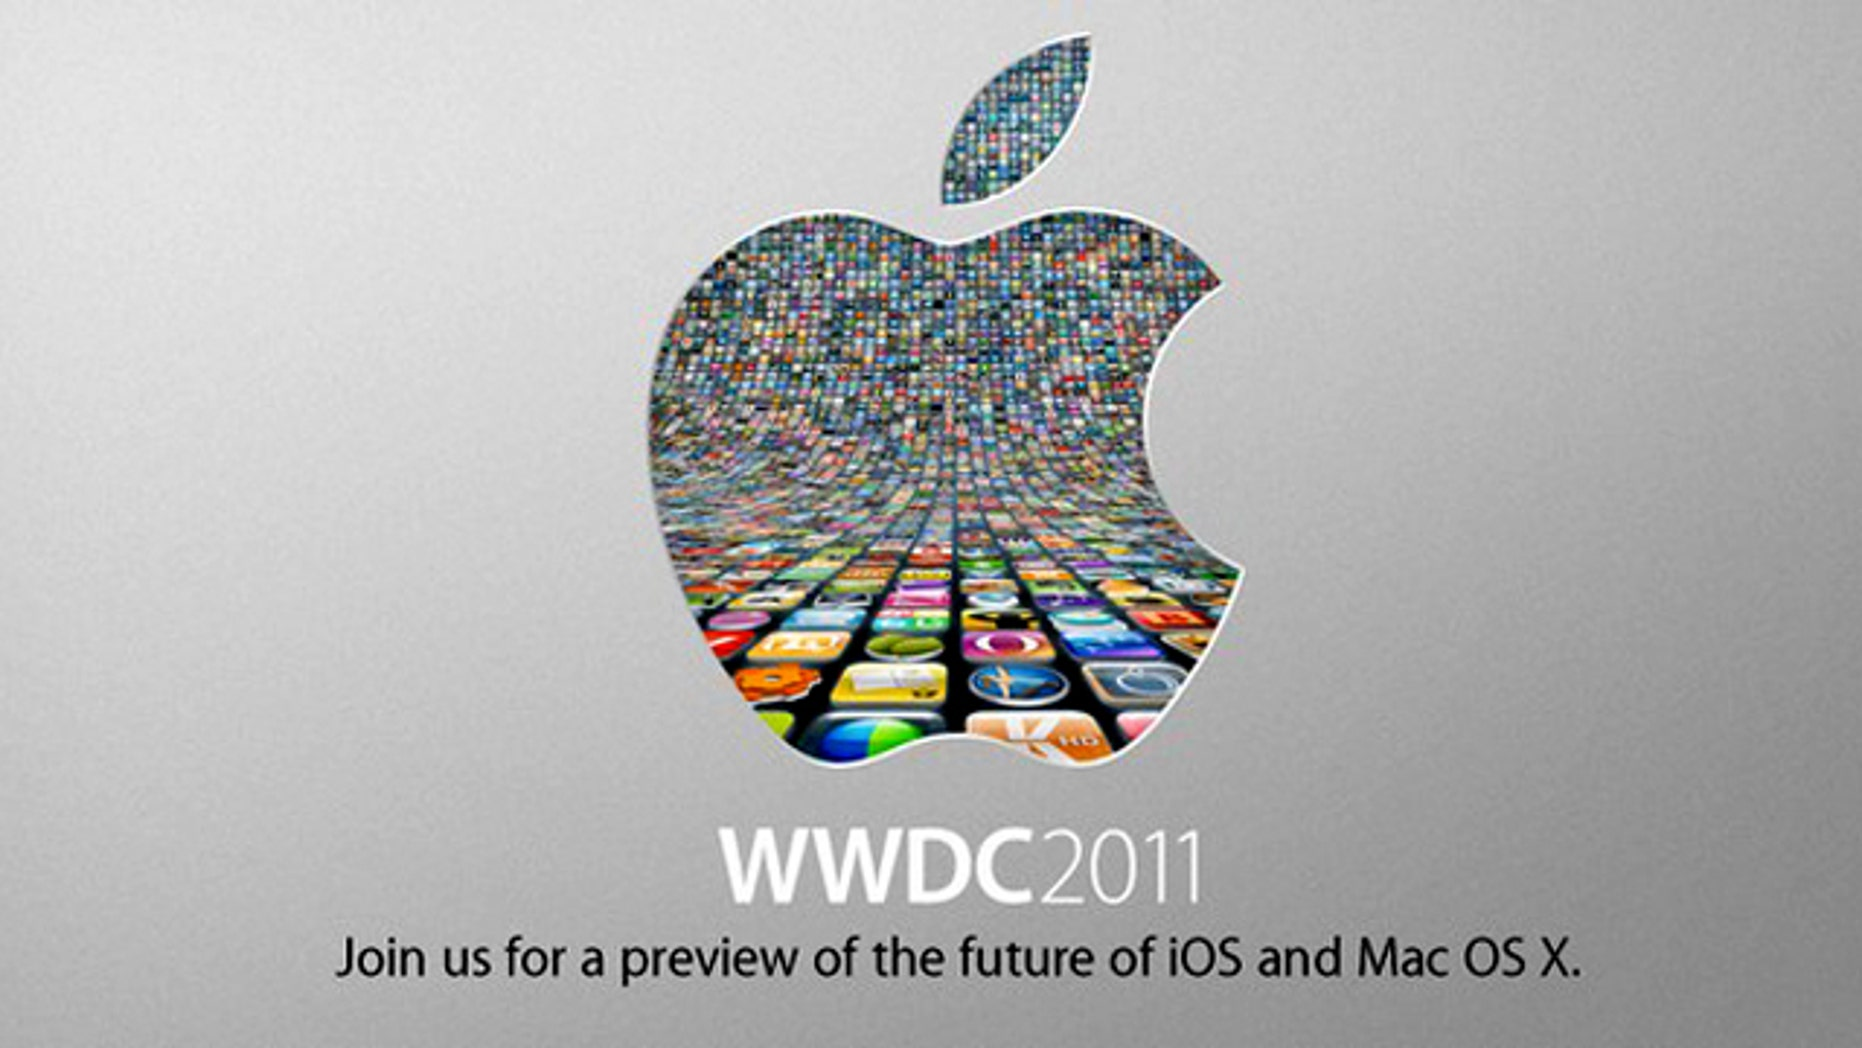 Apple on Monday announced the beginning of the Worldwide Developer Conference, where the company has traditionally unveiled the newest versions of its iPhones.